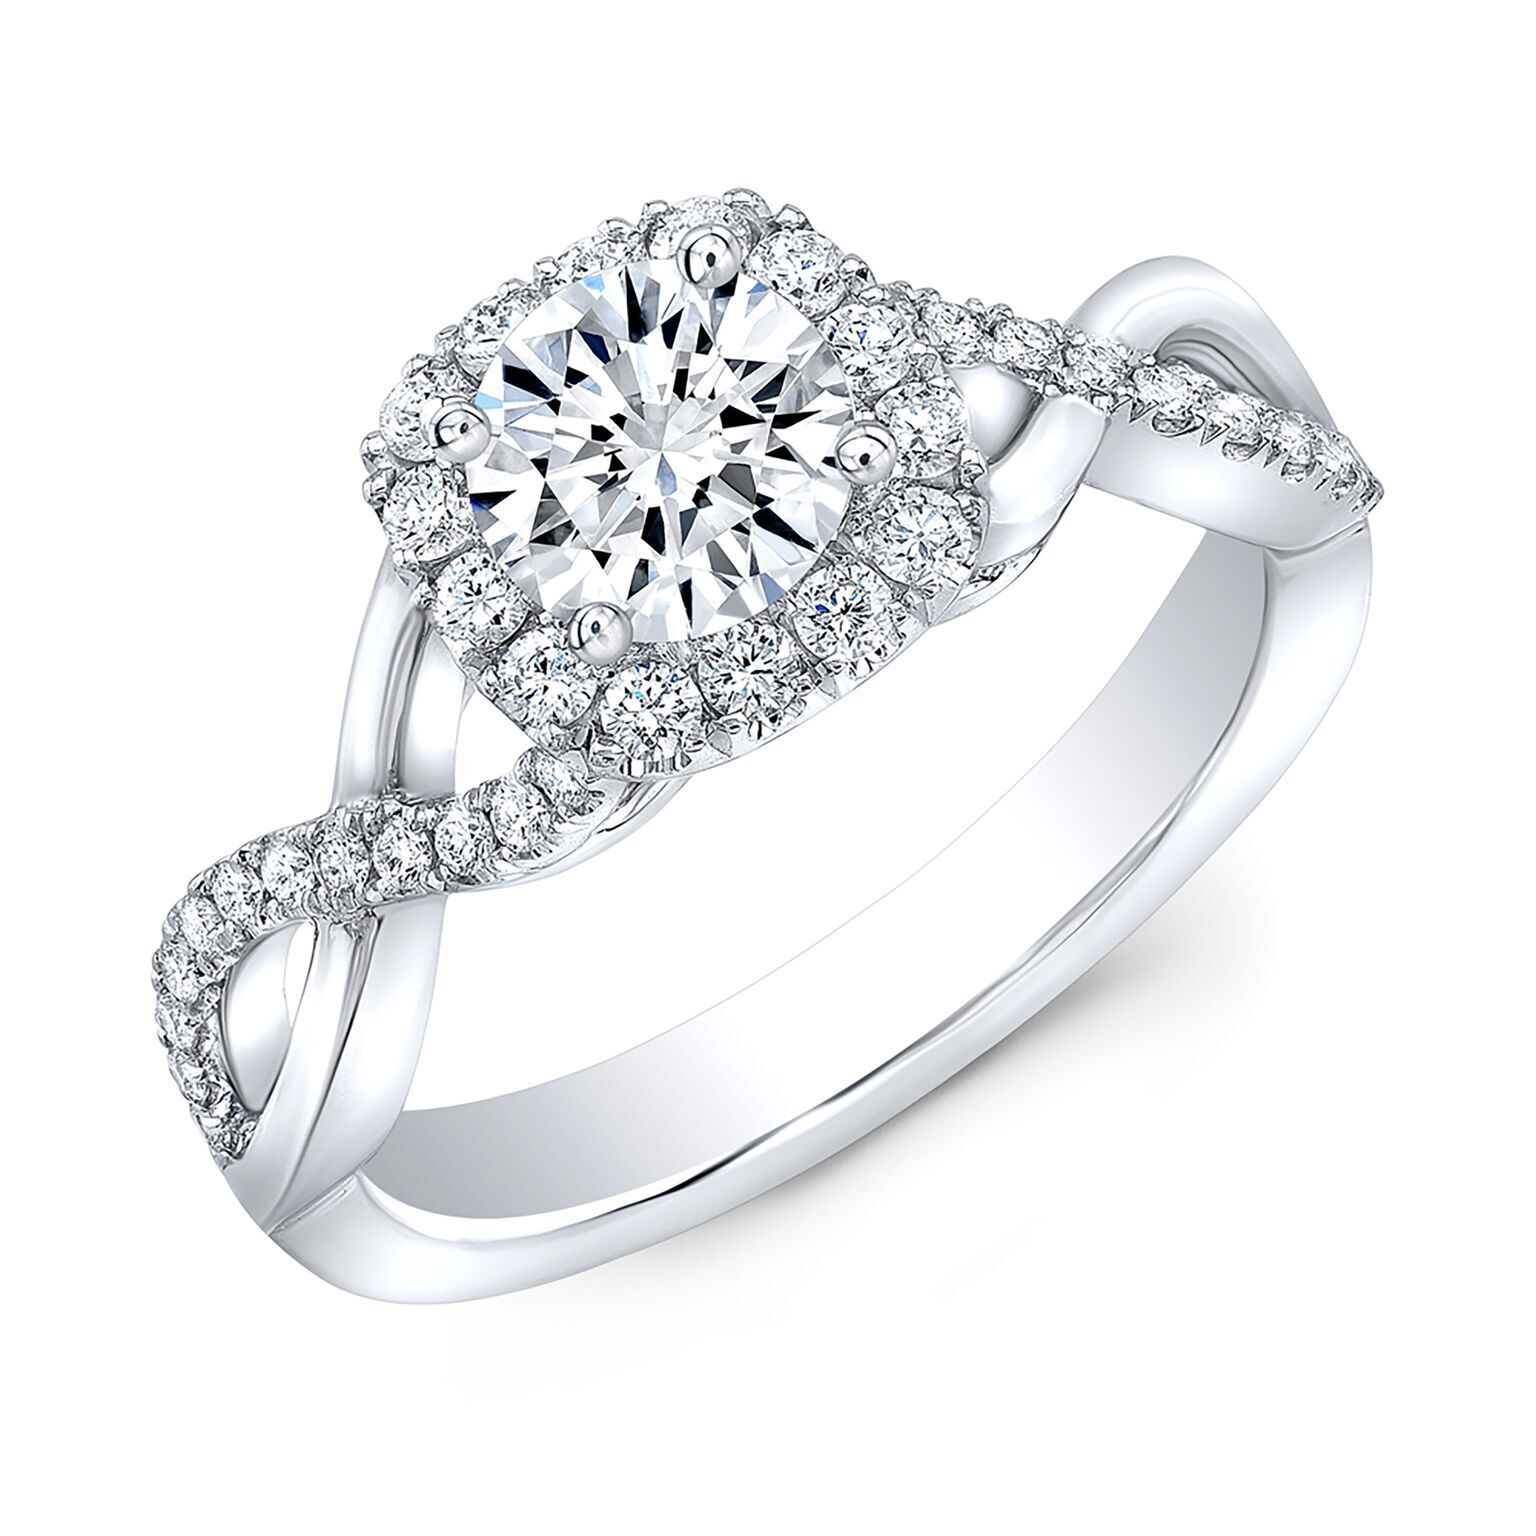 Natural Round Cut Twisted Pave Diamond Engagement Ring - GIA Certified 2